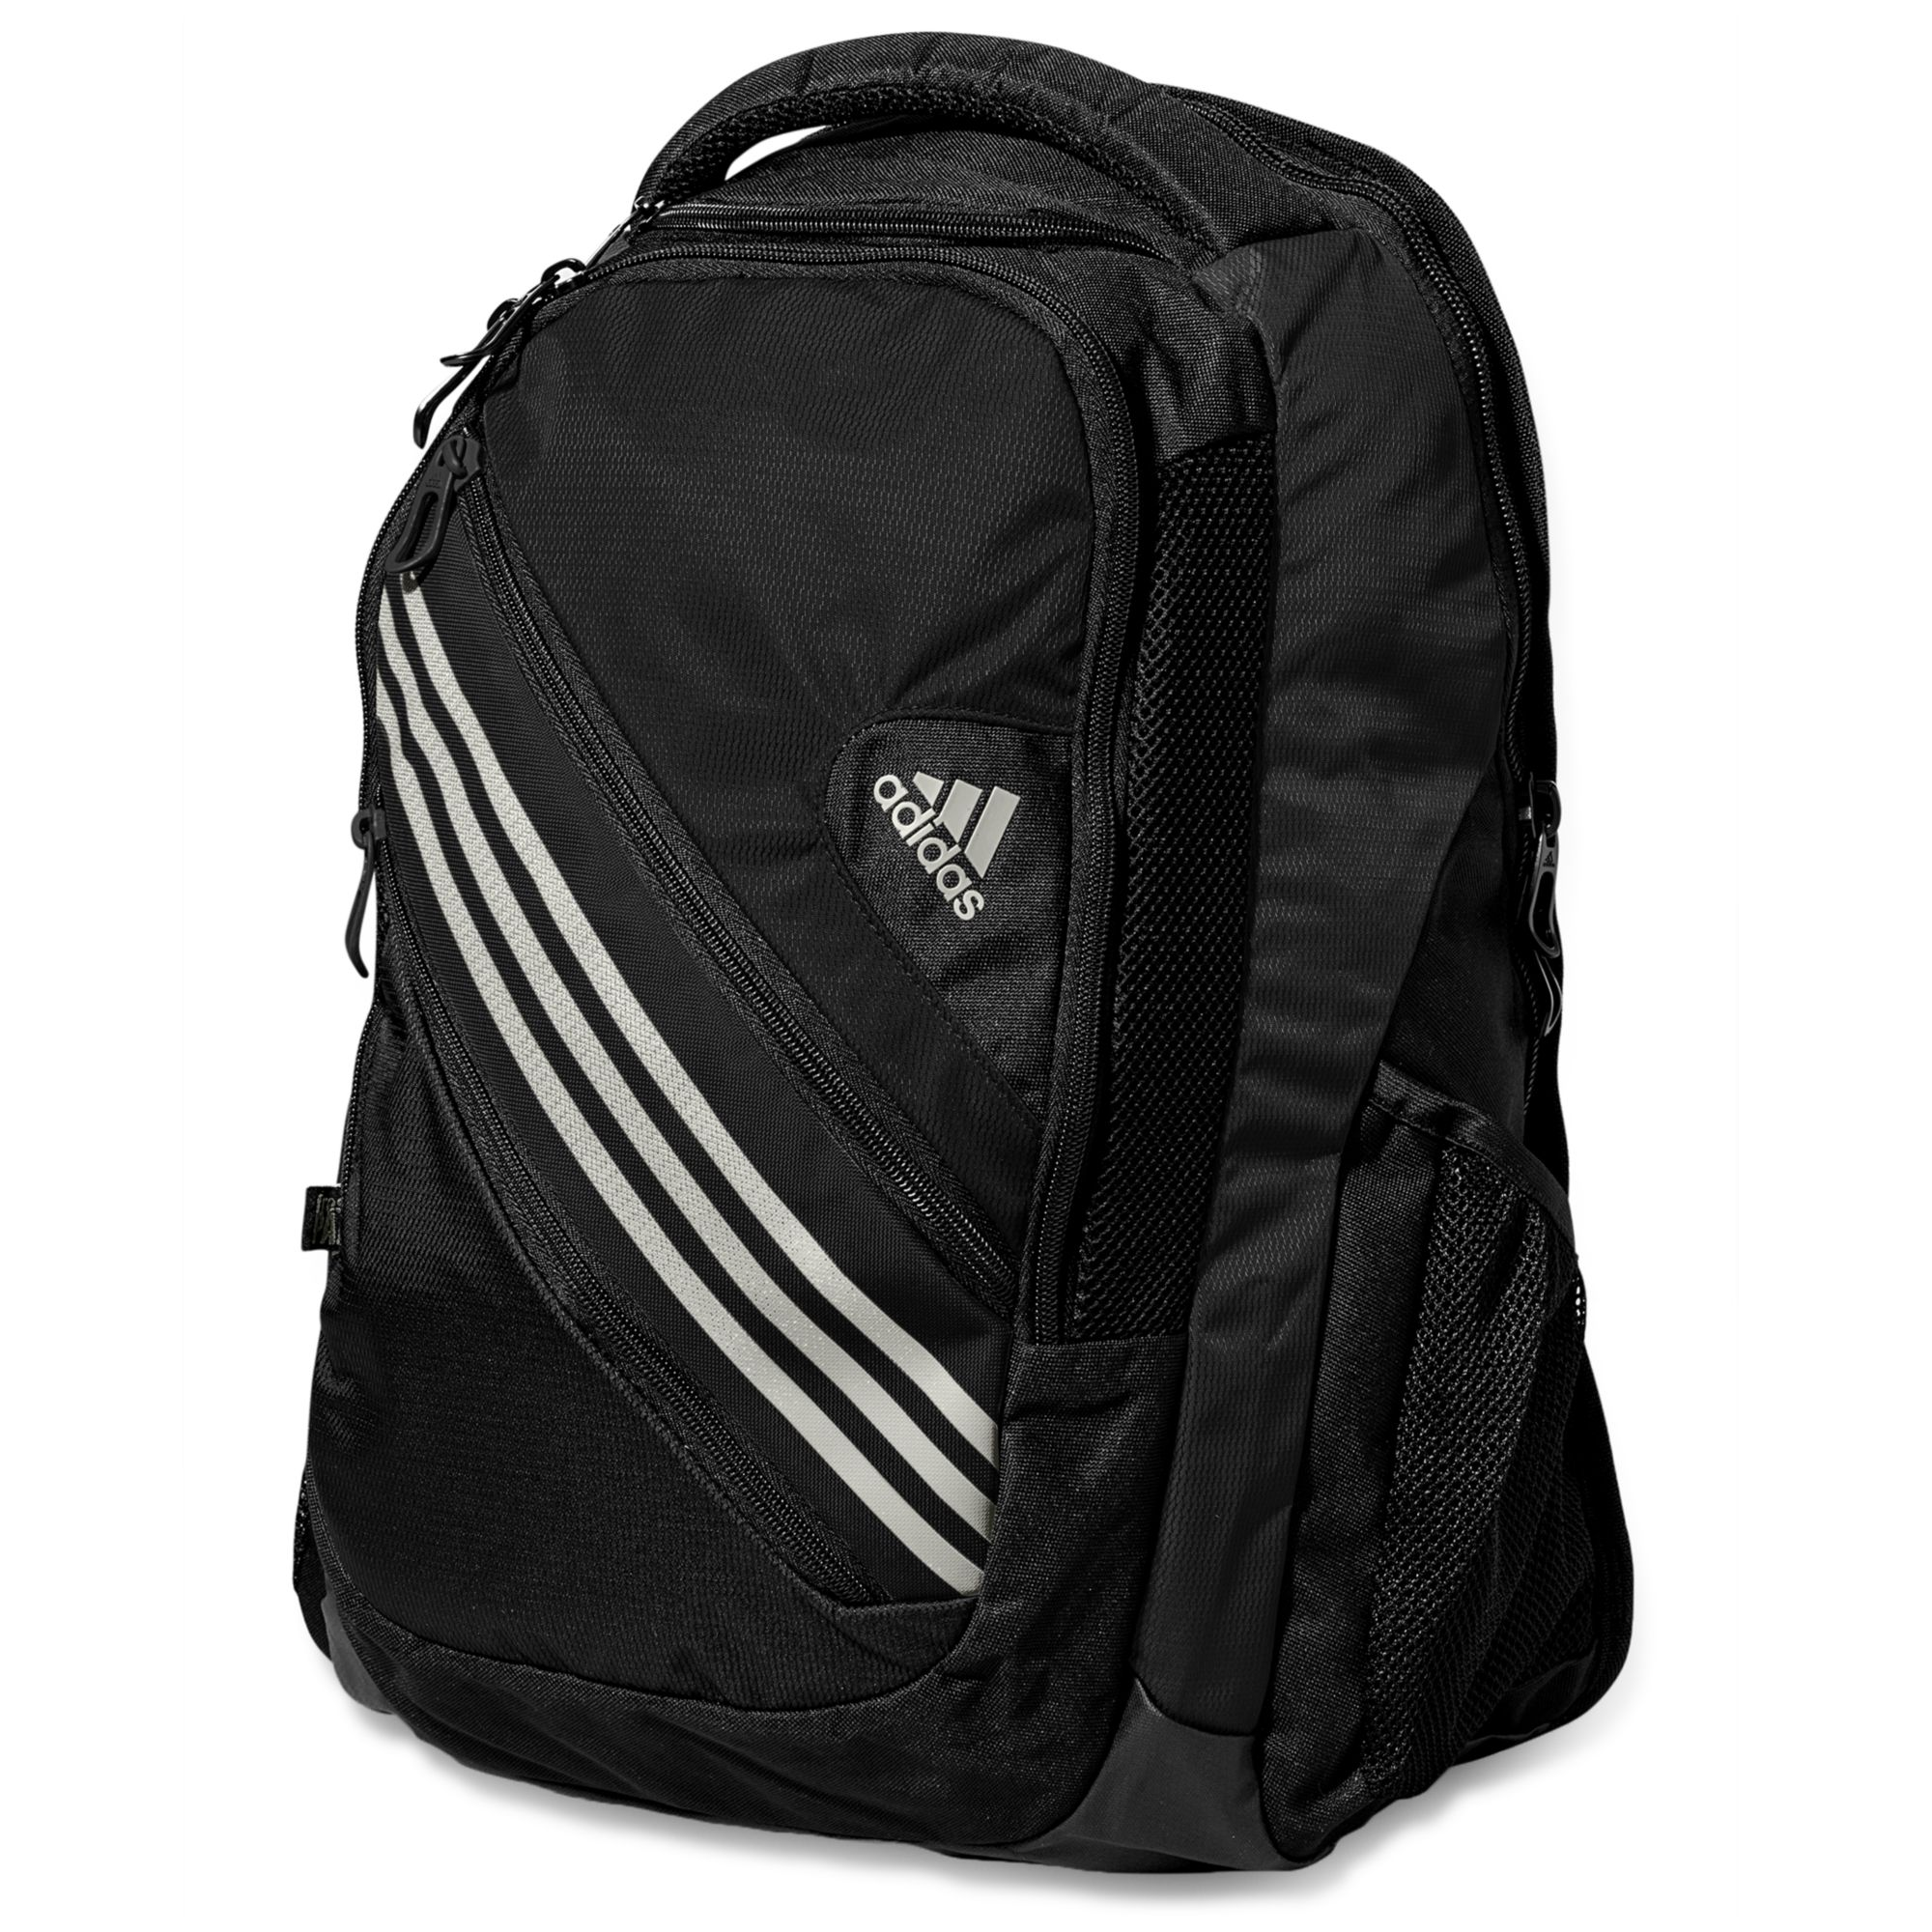 Lyst - adidas Climacool Speed Iii Backpack in Black for Men e048d4b08d